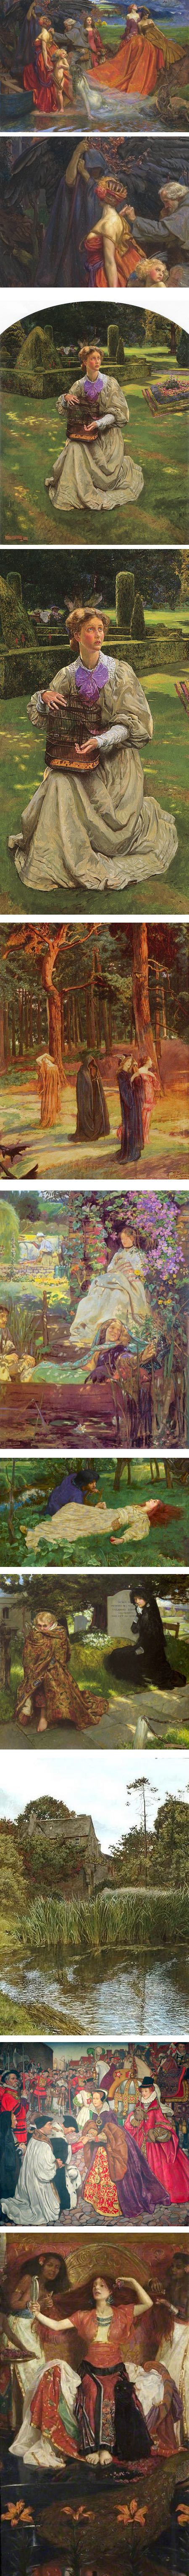 John Byam Liston Shaw, Victorian painter in the Pre-Raphaelite tradition